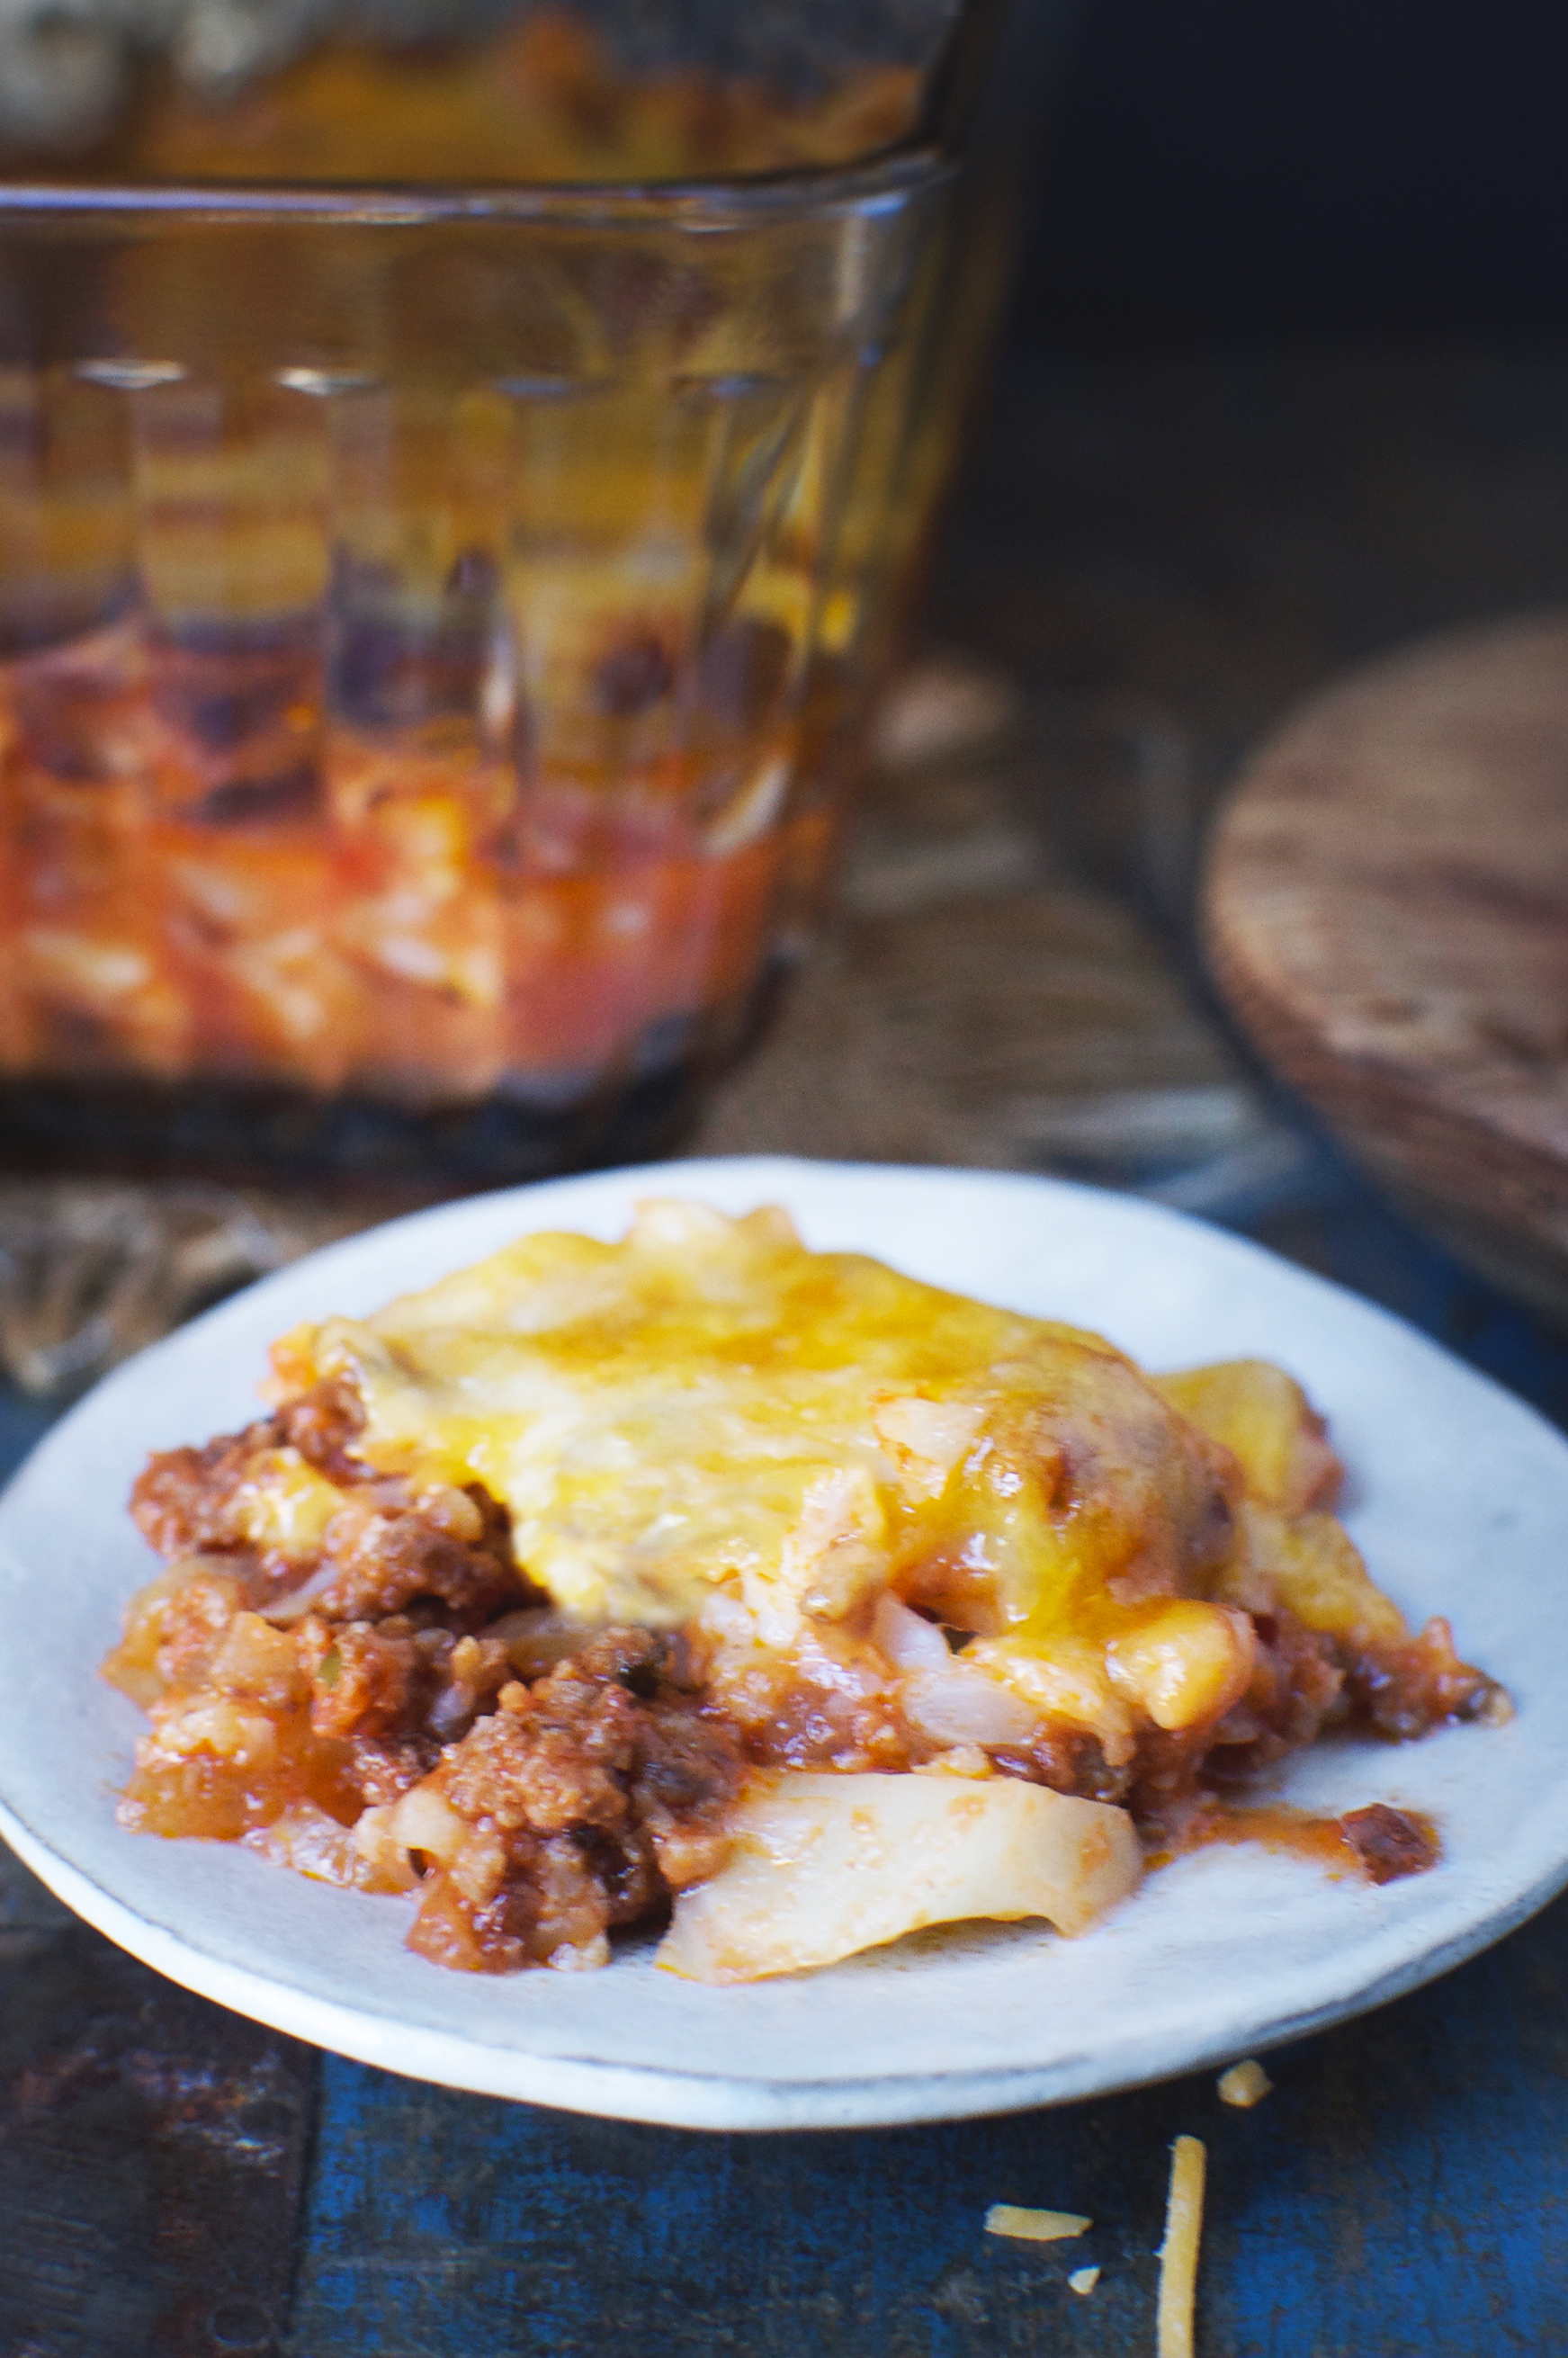 Keto-Friendly Italian Ground Beef Casserole Recipe on a plate.